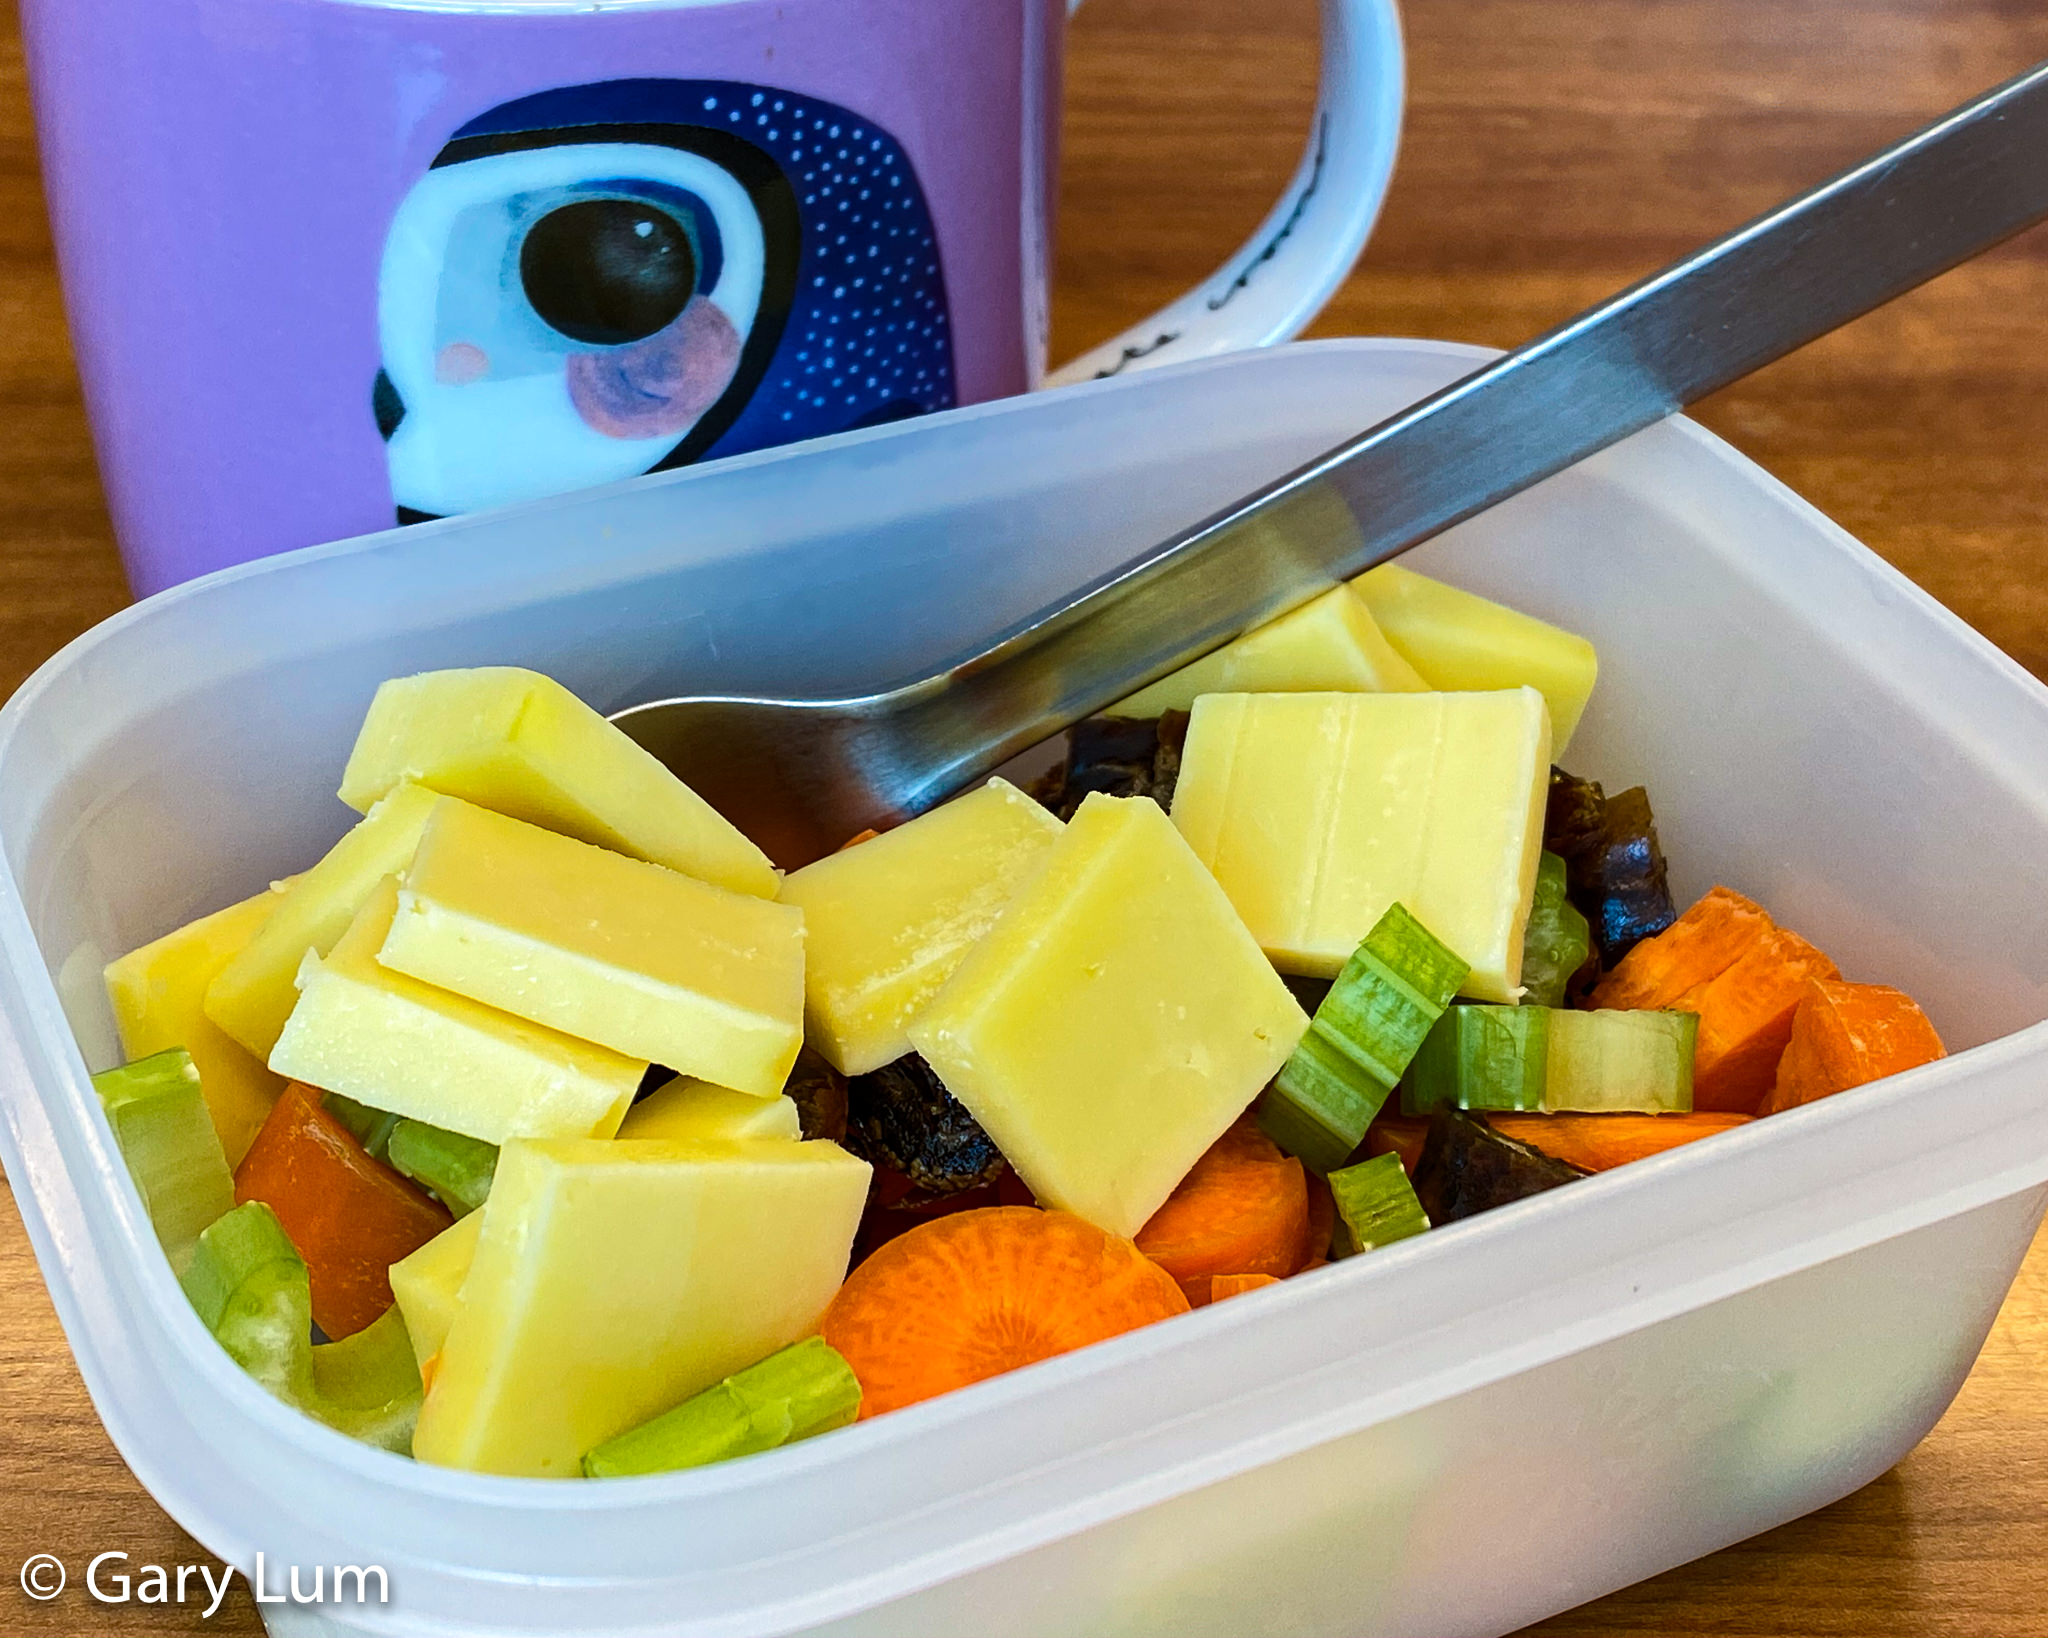 Carrot, celery, cheese, and dates for lunch with a cup of tea. Gary Lum.